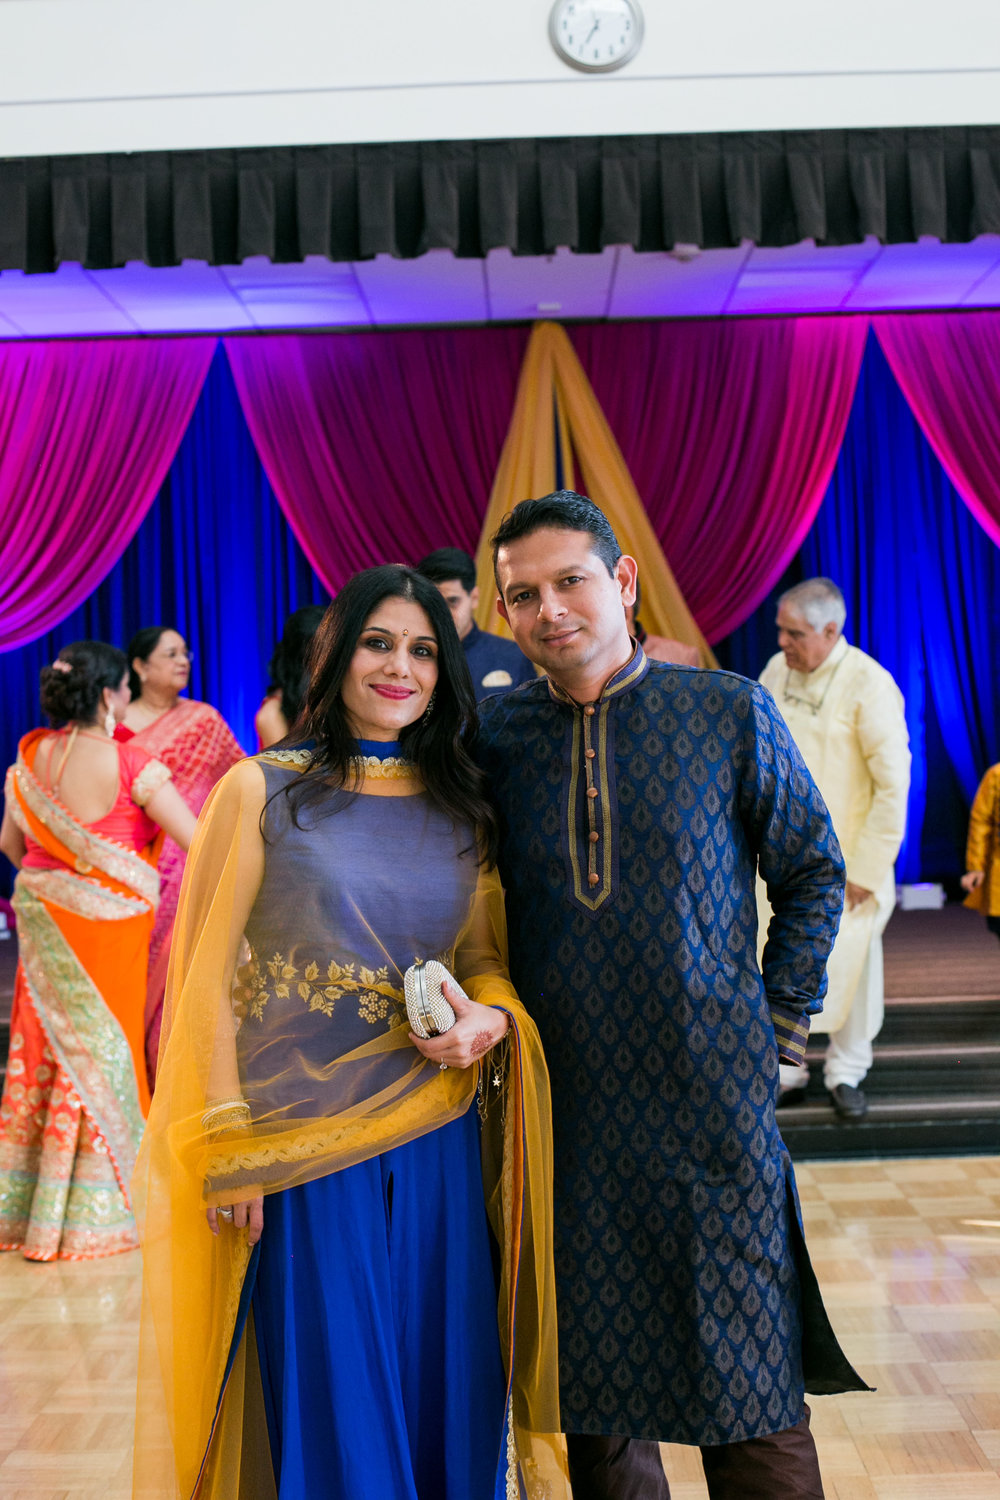 Indian_Wedding_Villa_Montalvo_Meo_Baaklini074.jpg